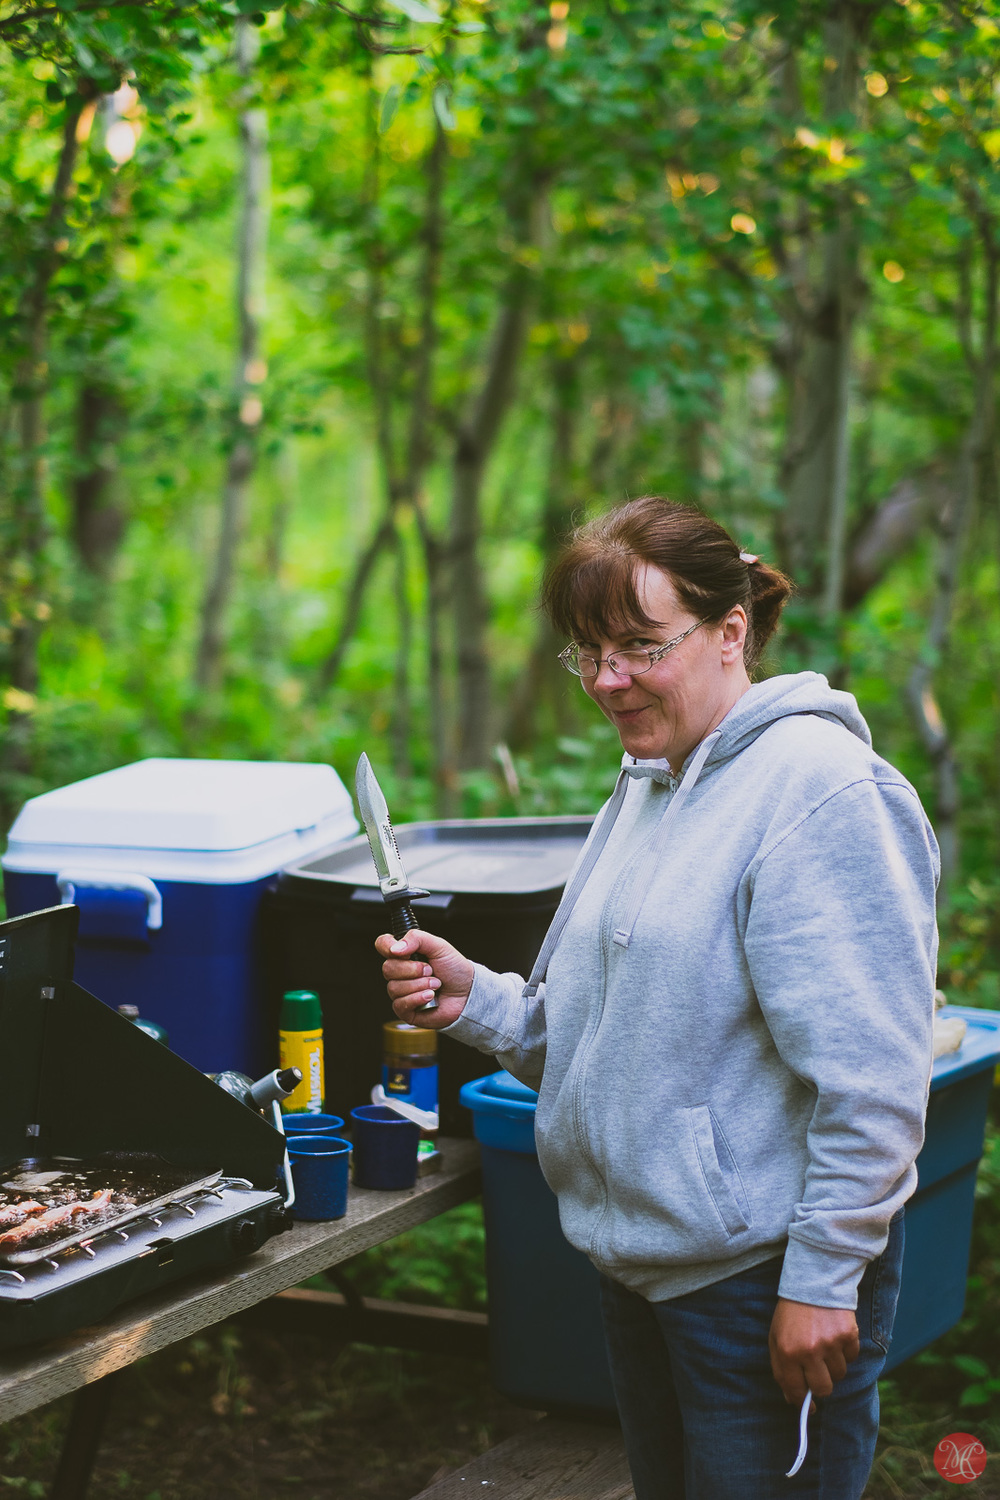 Cooking breakfast - Alberta camping